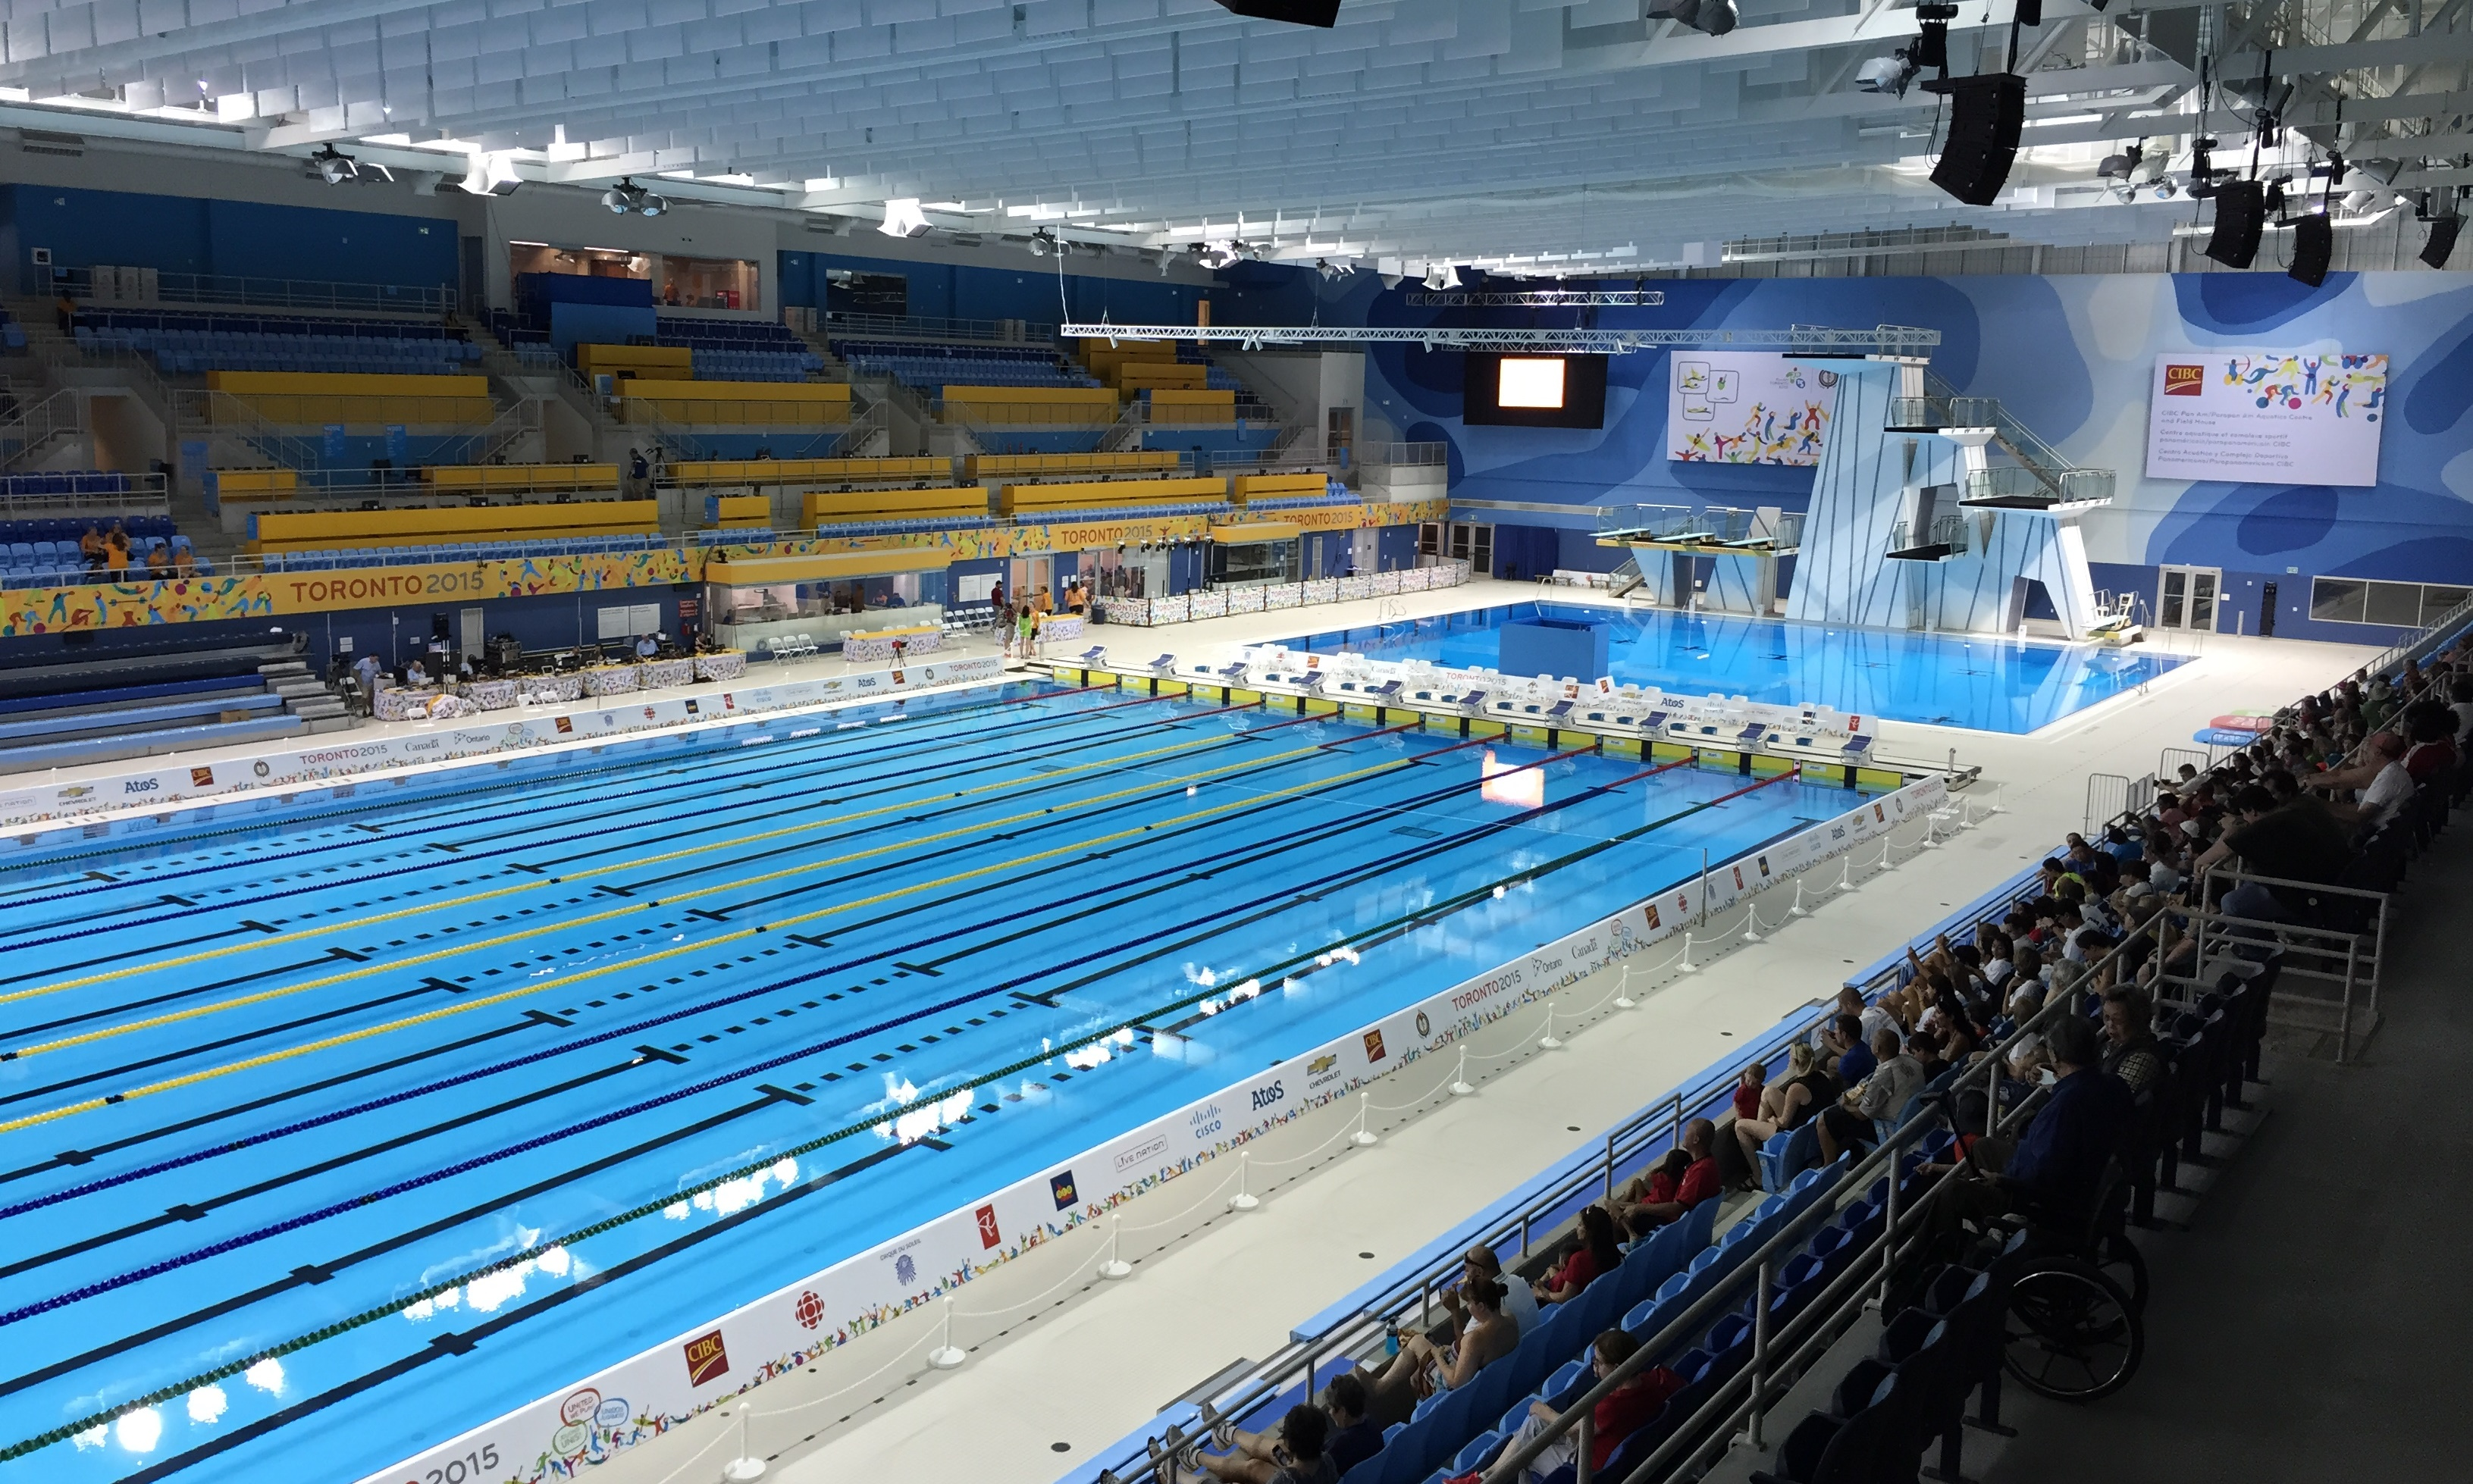 olympic swimming pool 2015 toronto pan am sports centre wikiwand - Olympic Swimming Pool 2016